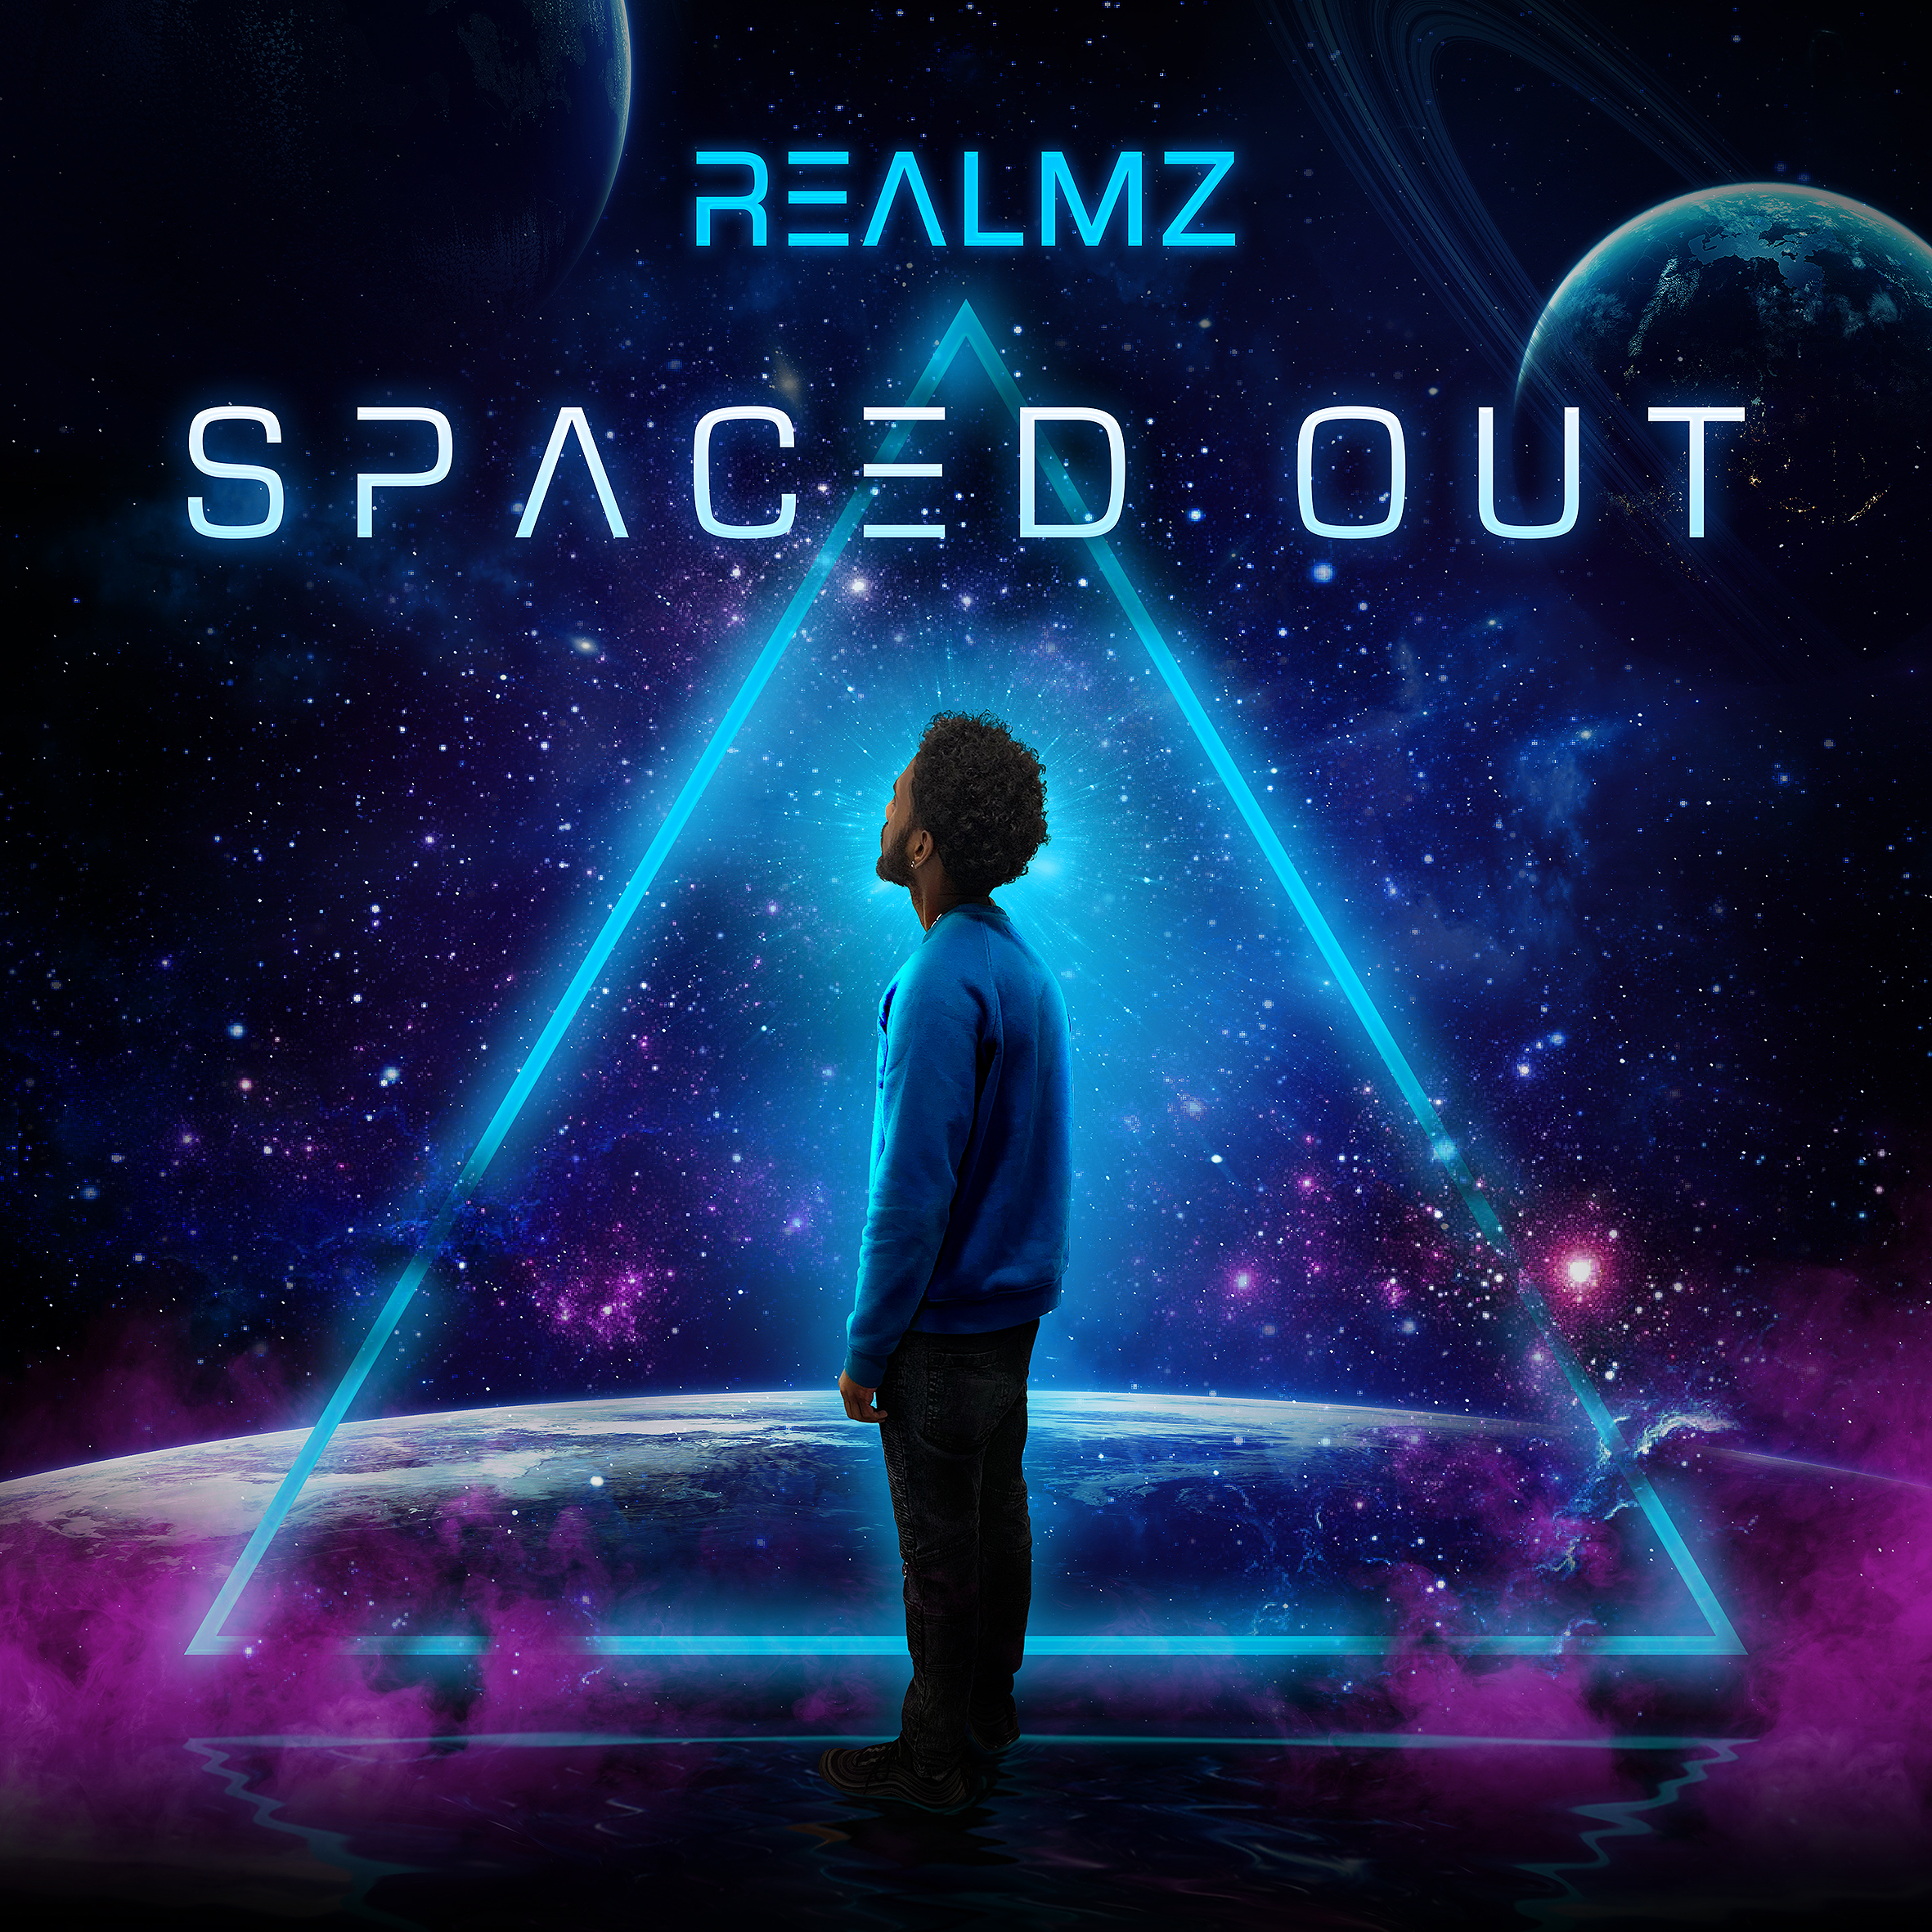 REALMZ_SPACED_OUT_ARTWORK_02 (1).jpg